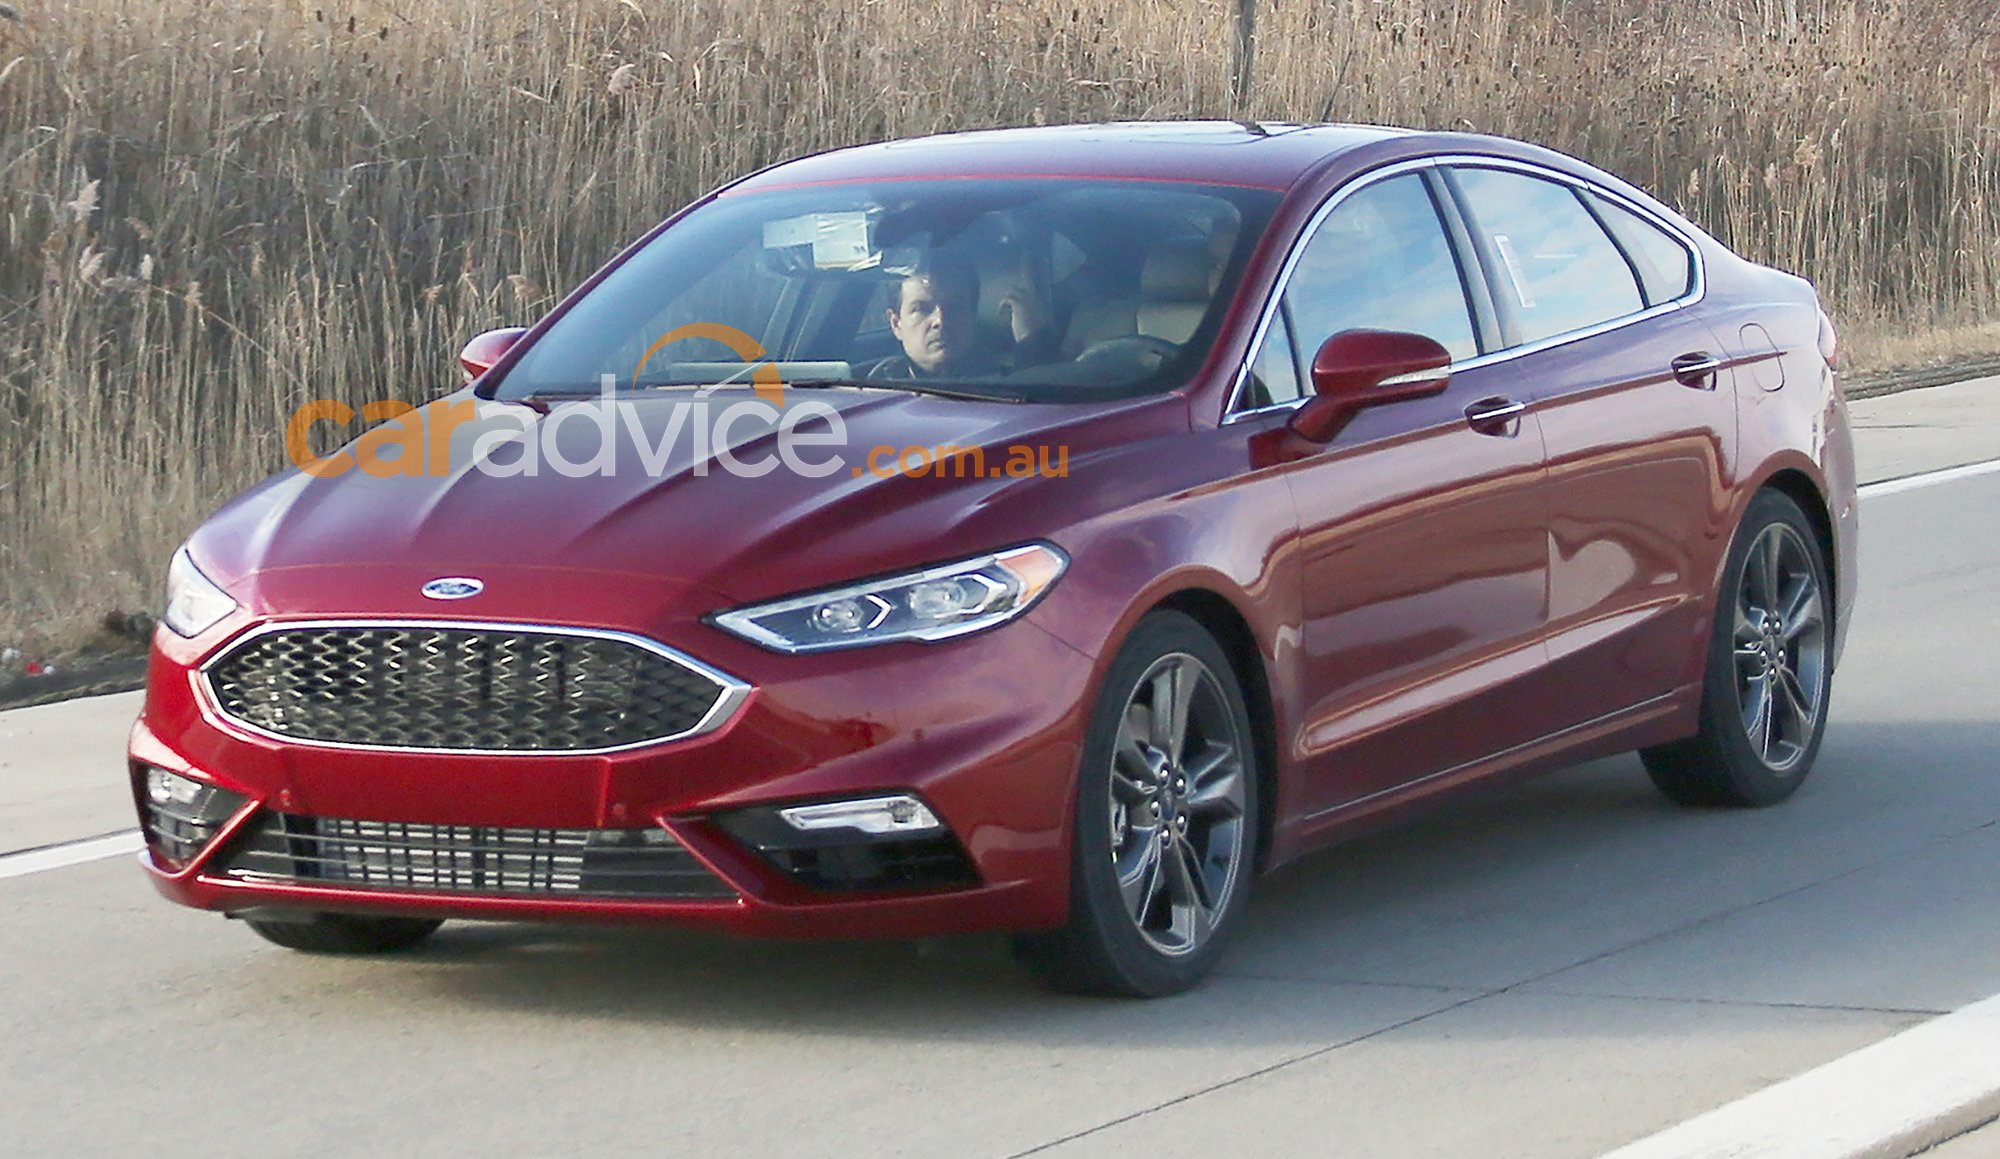 2017 ford mondeo sport spied without disguise turbo v6. Black Bedroom Furniture Sets. Home Design Ideas